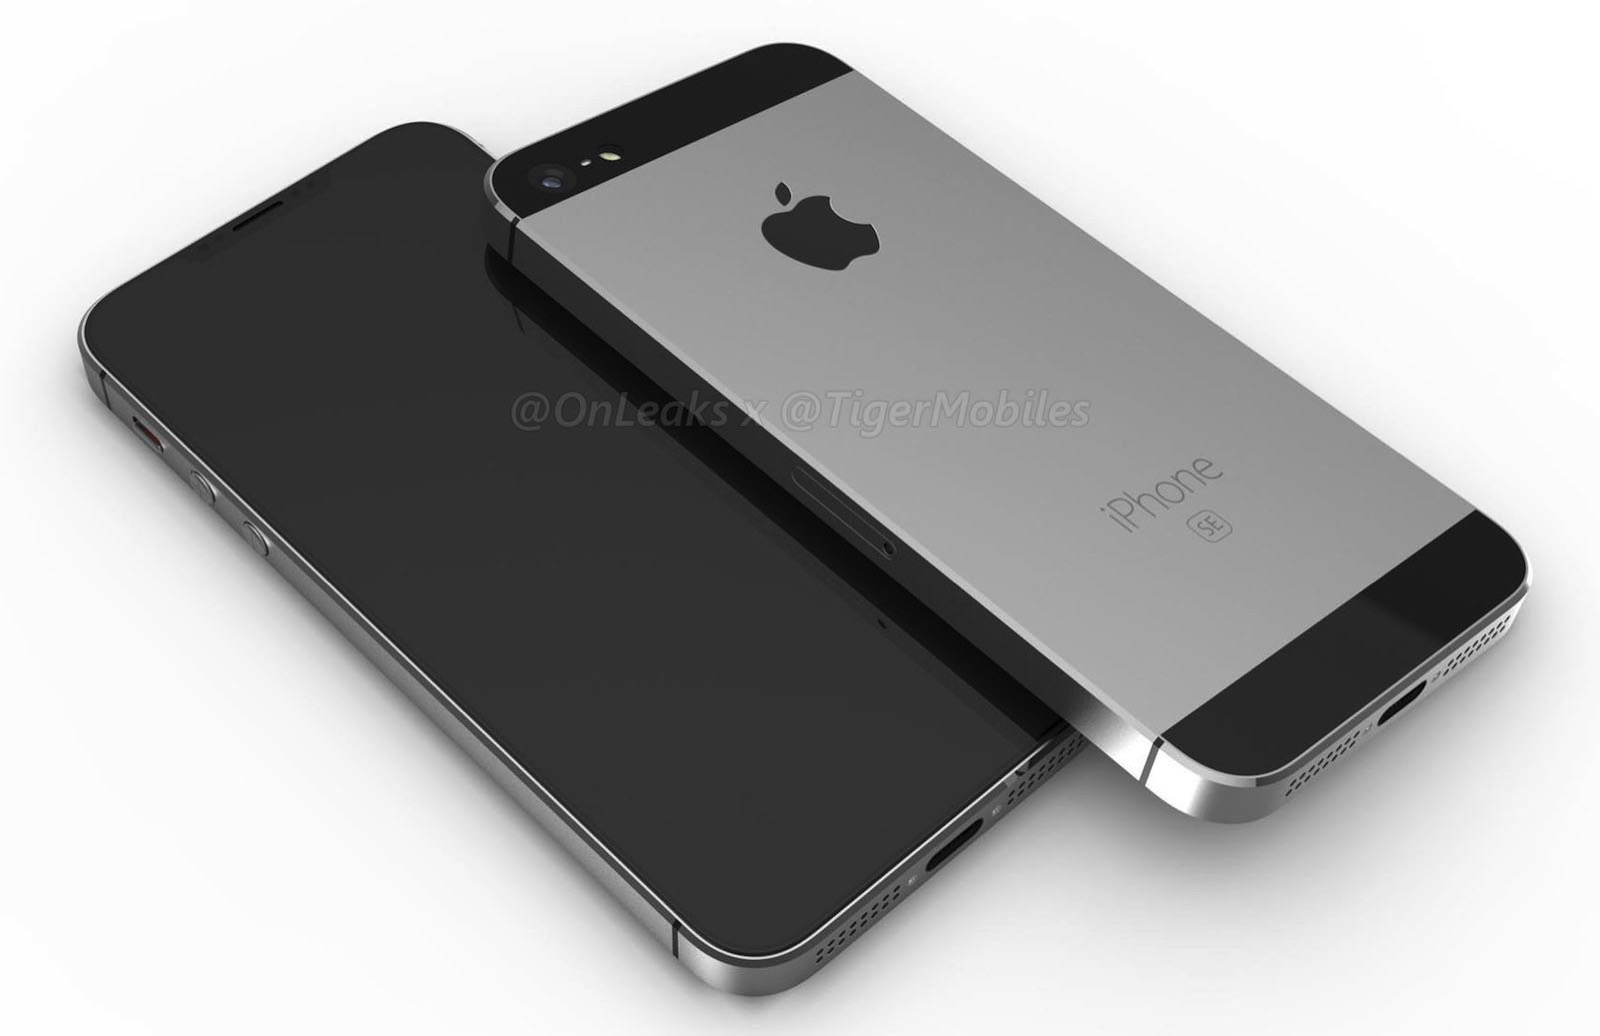 Iphone se2 rendering images